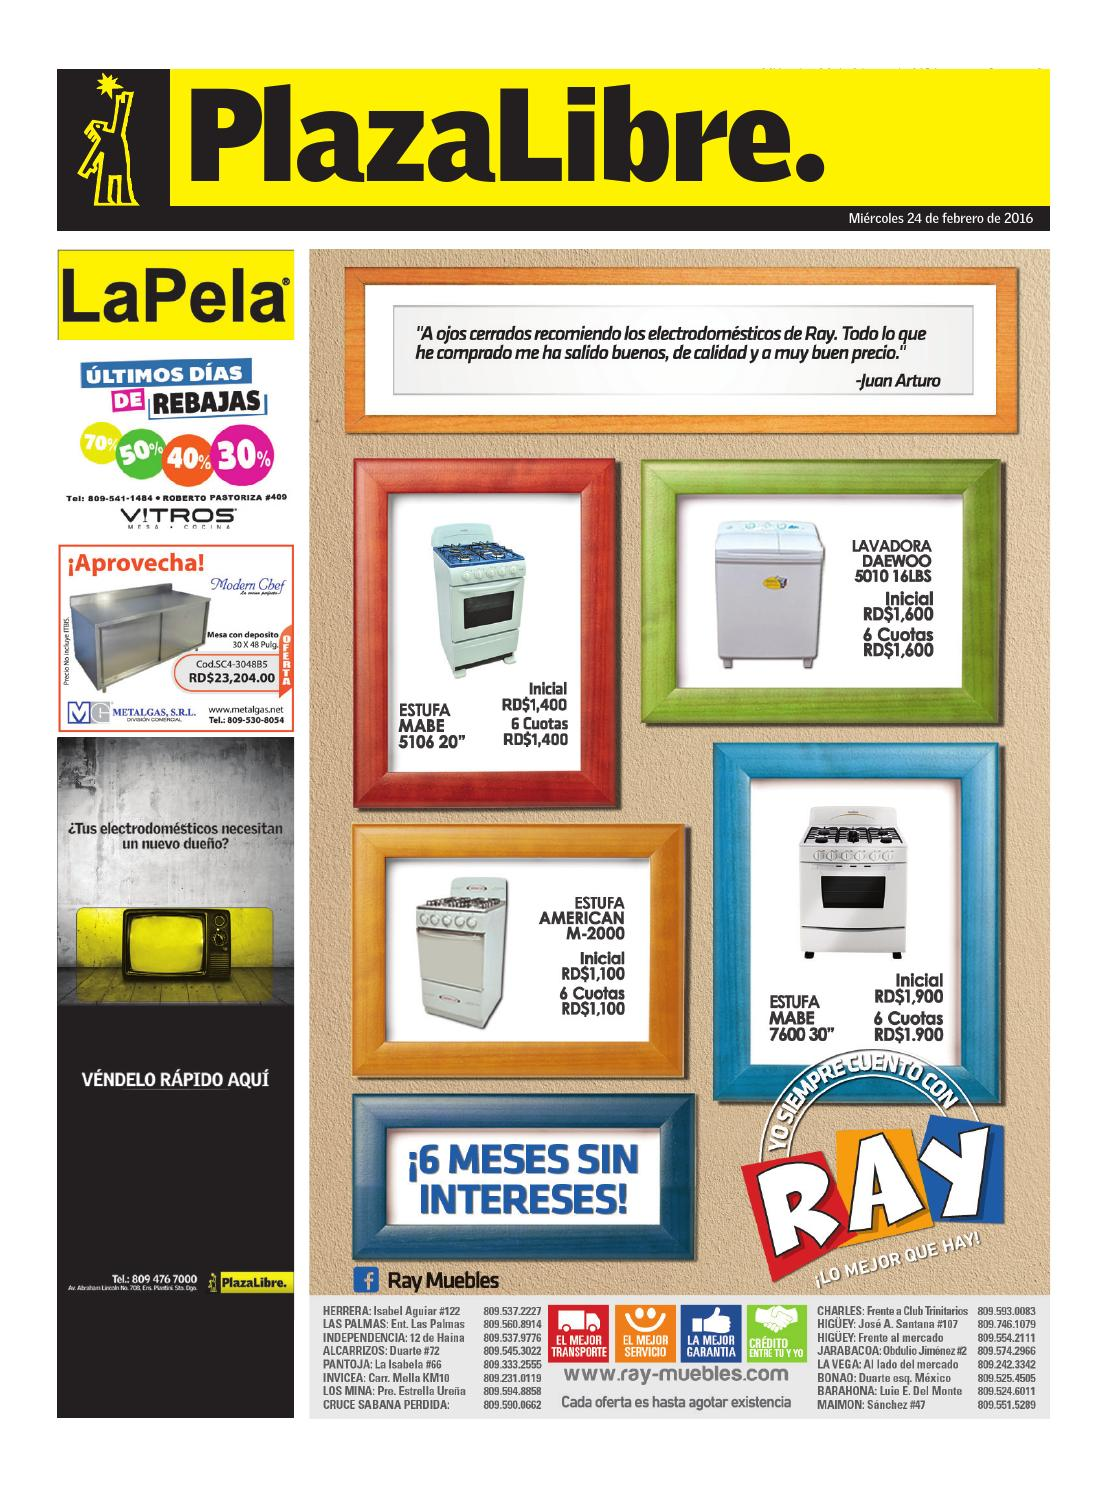 Pl20160224 by Grupo Diario Libre, S. A. - issuu